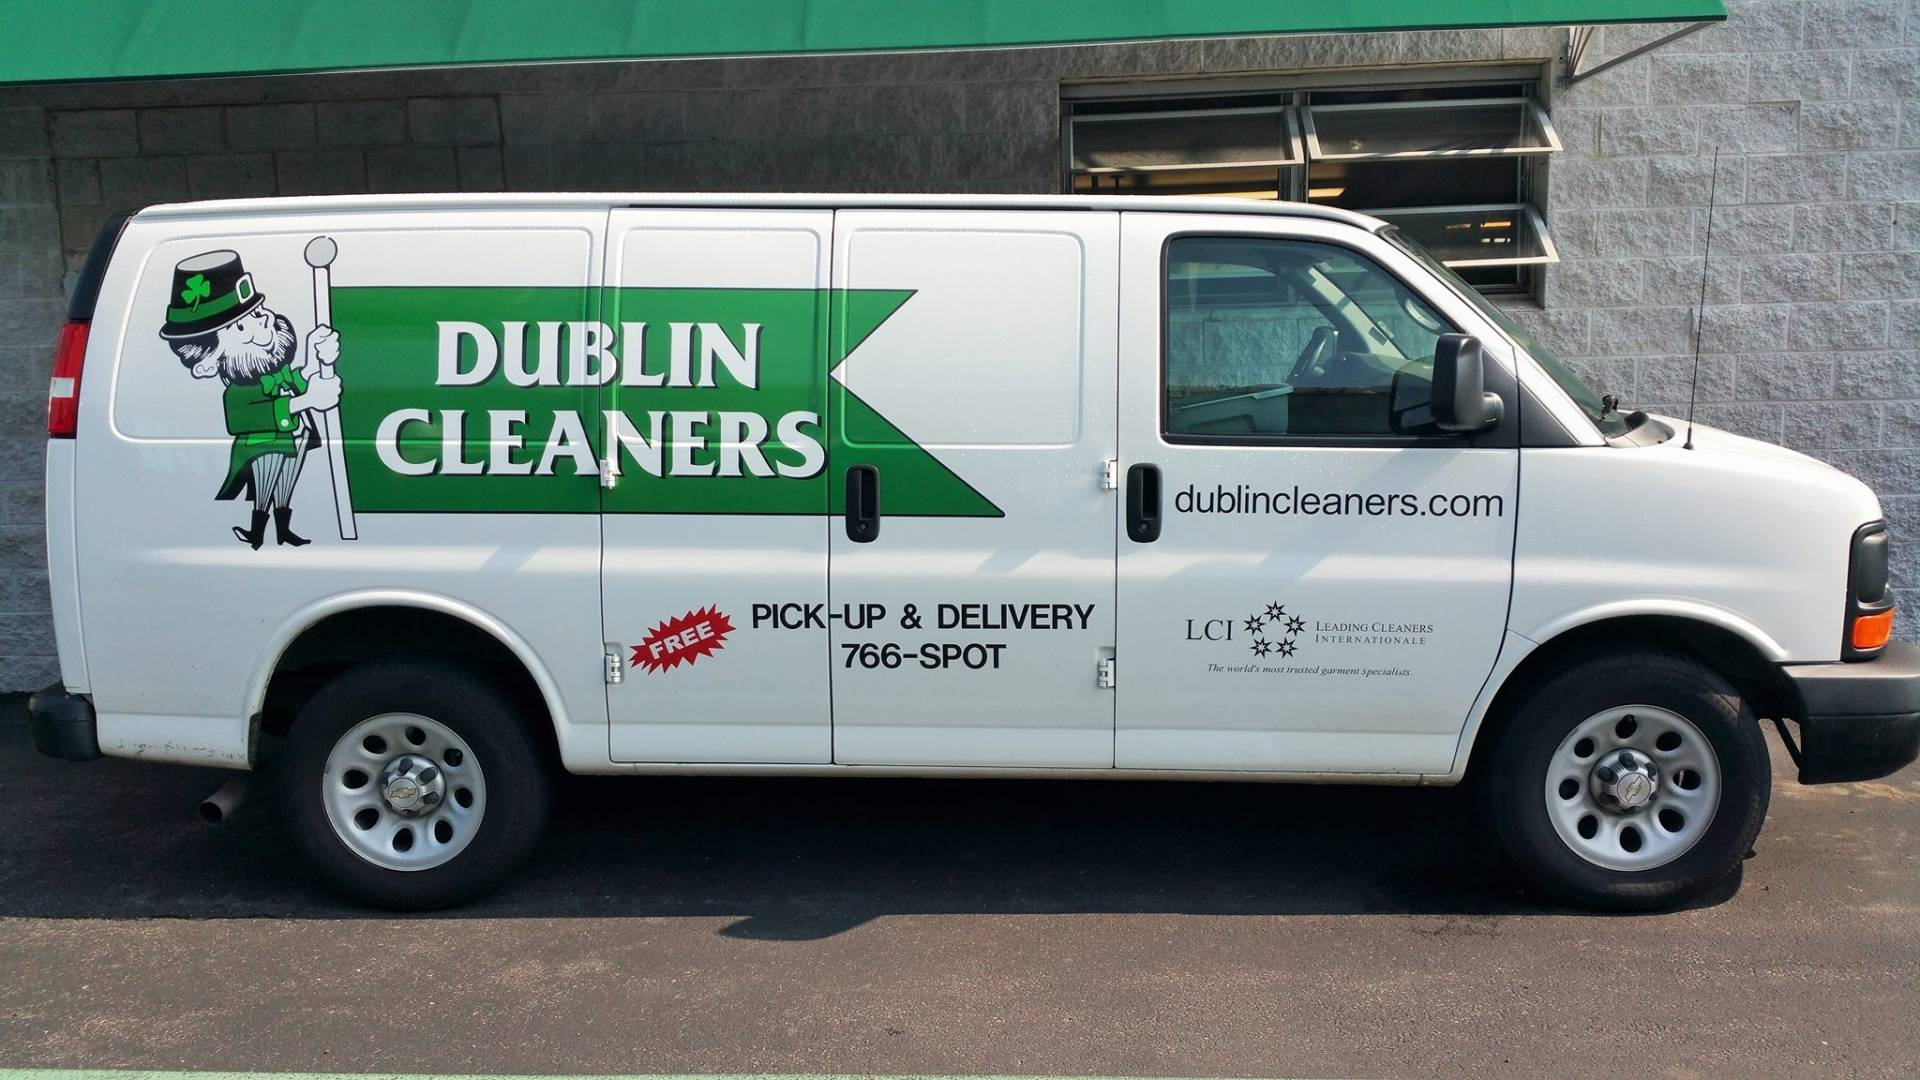 Dublin Cleaners